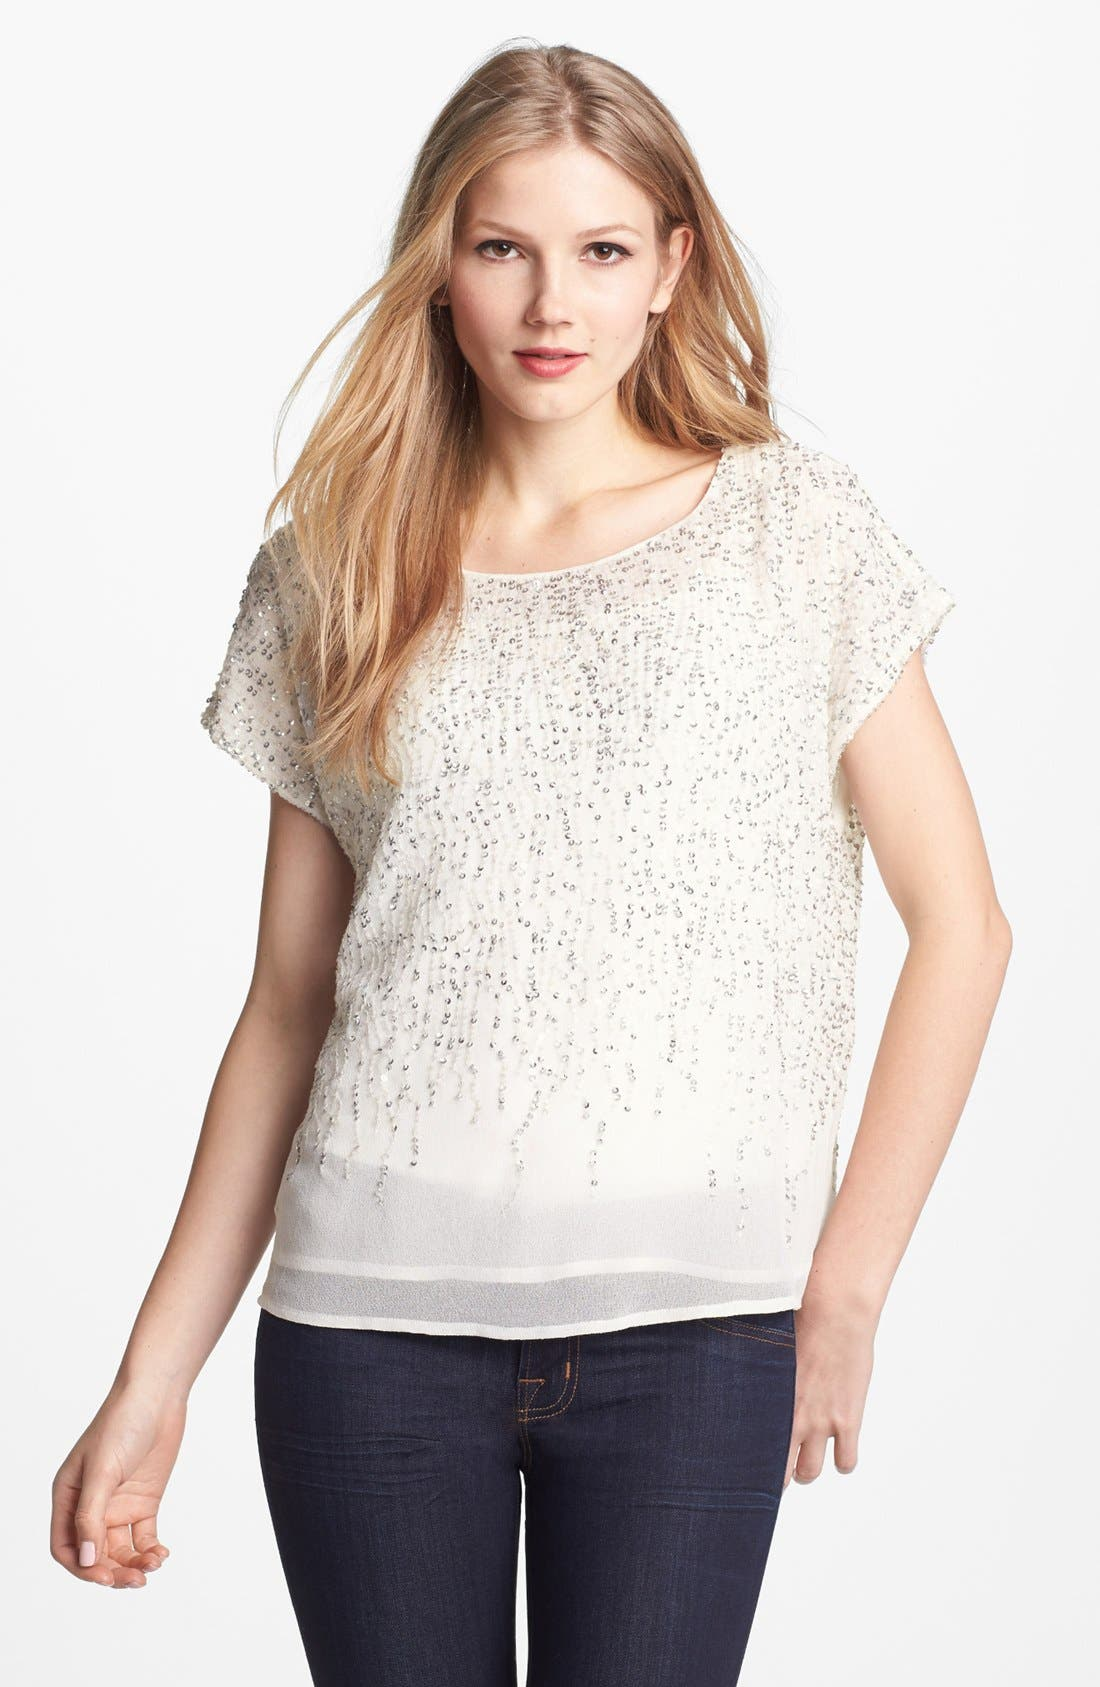 Main Image - Vince Camuto 'Flower Fields' Short Sleeve Sequin Blouse